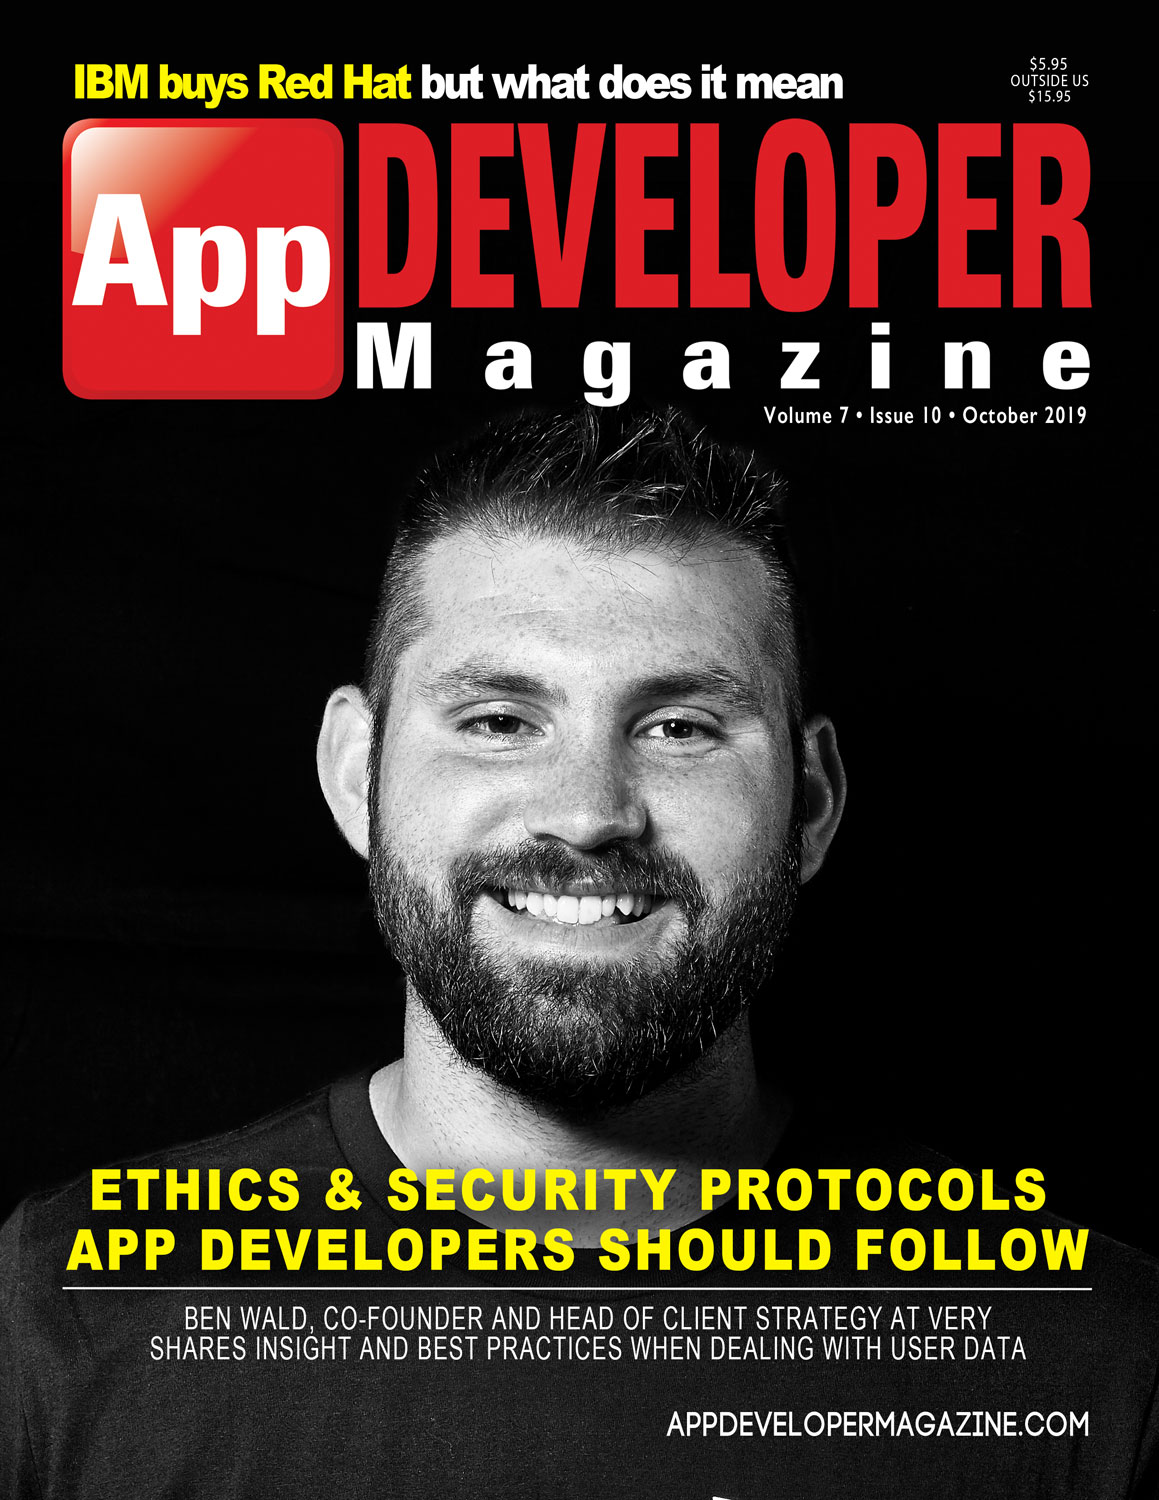 App Developer Magazine October 2019 Cover